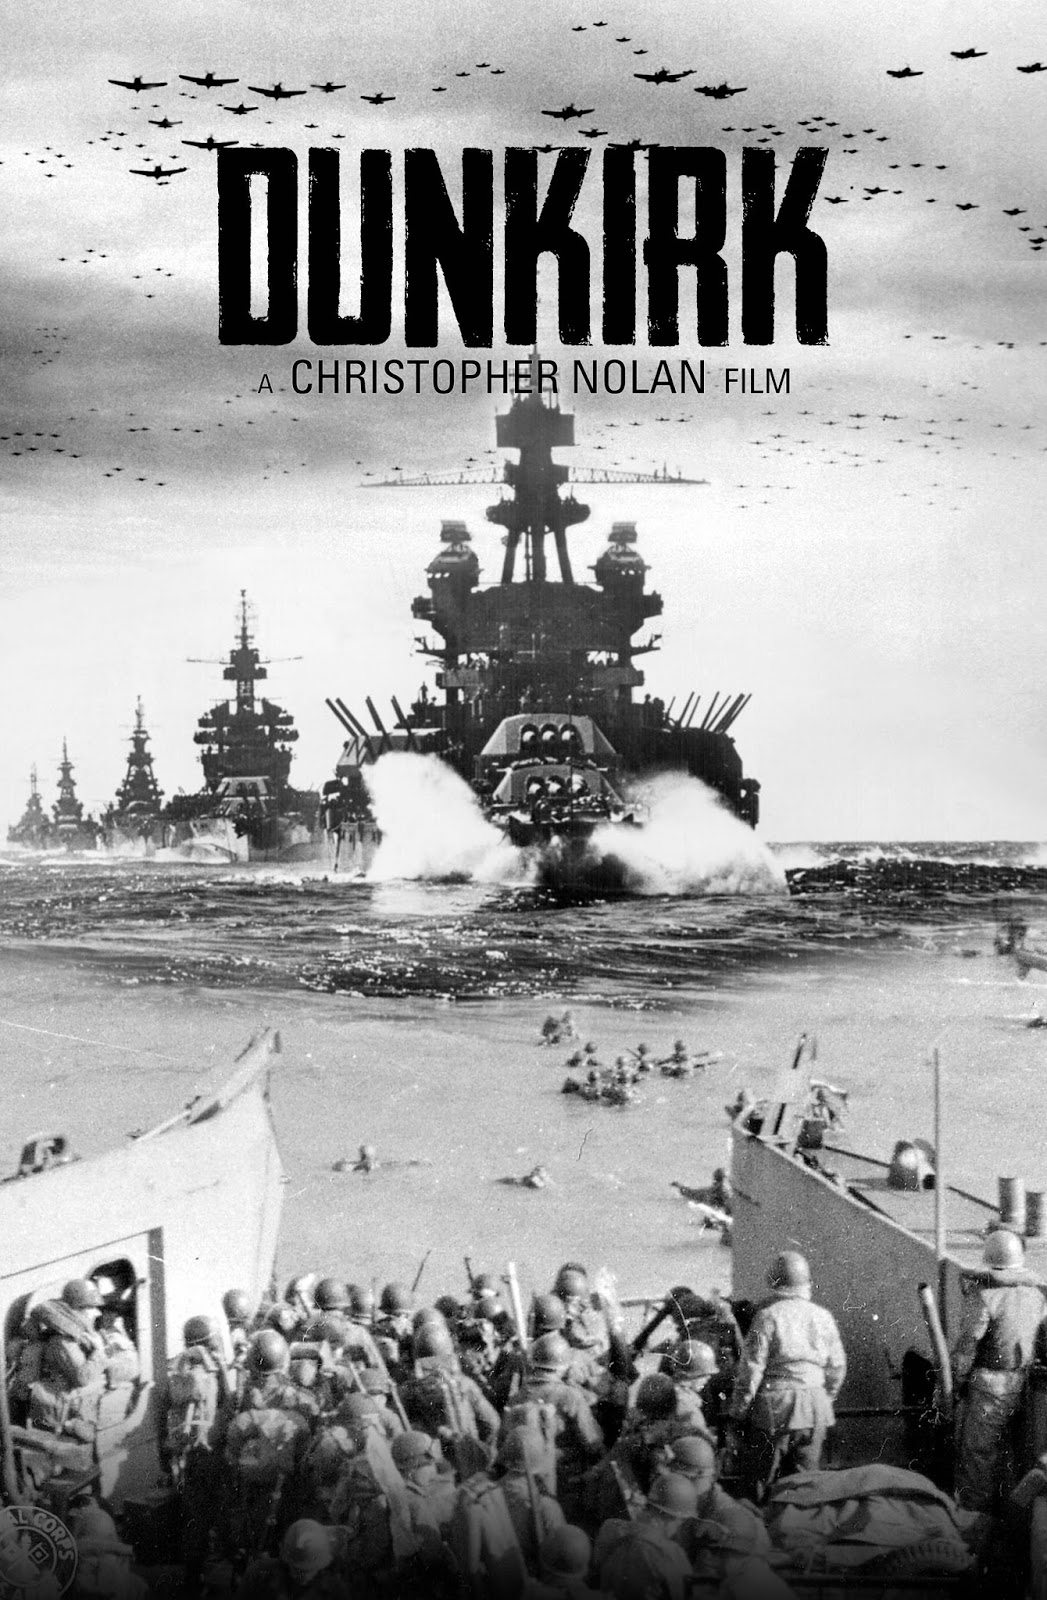 Dunkirk (2017) Full Movie Download DVDrip HD